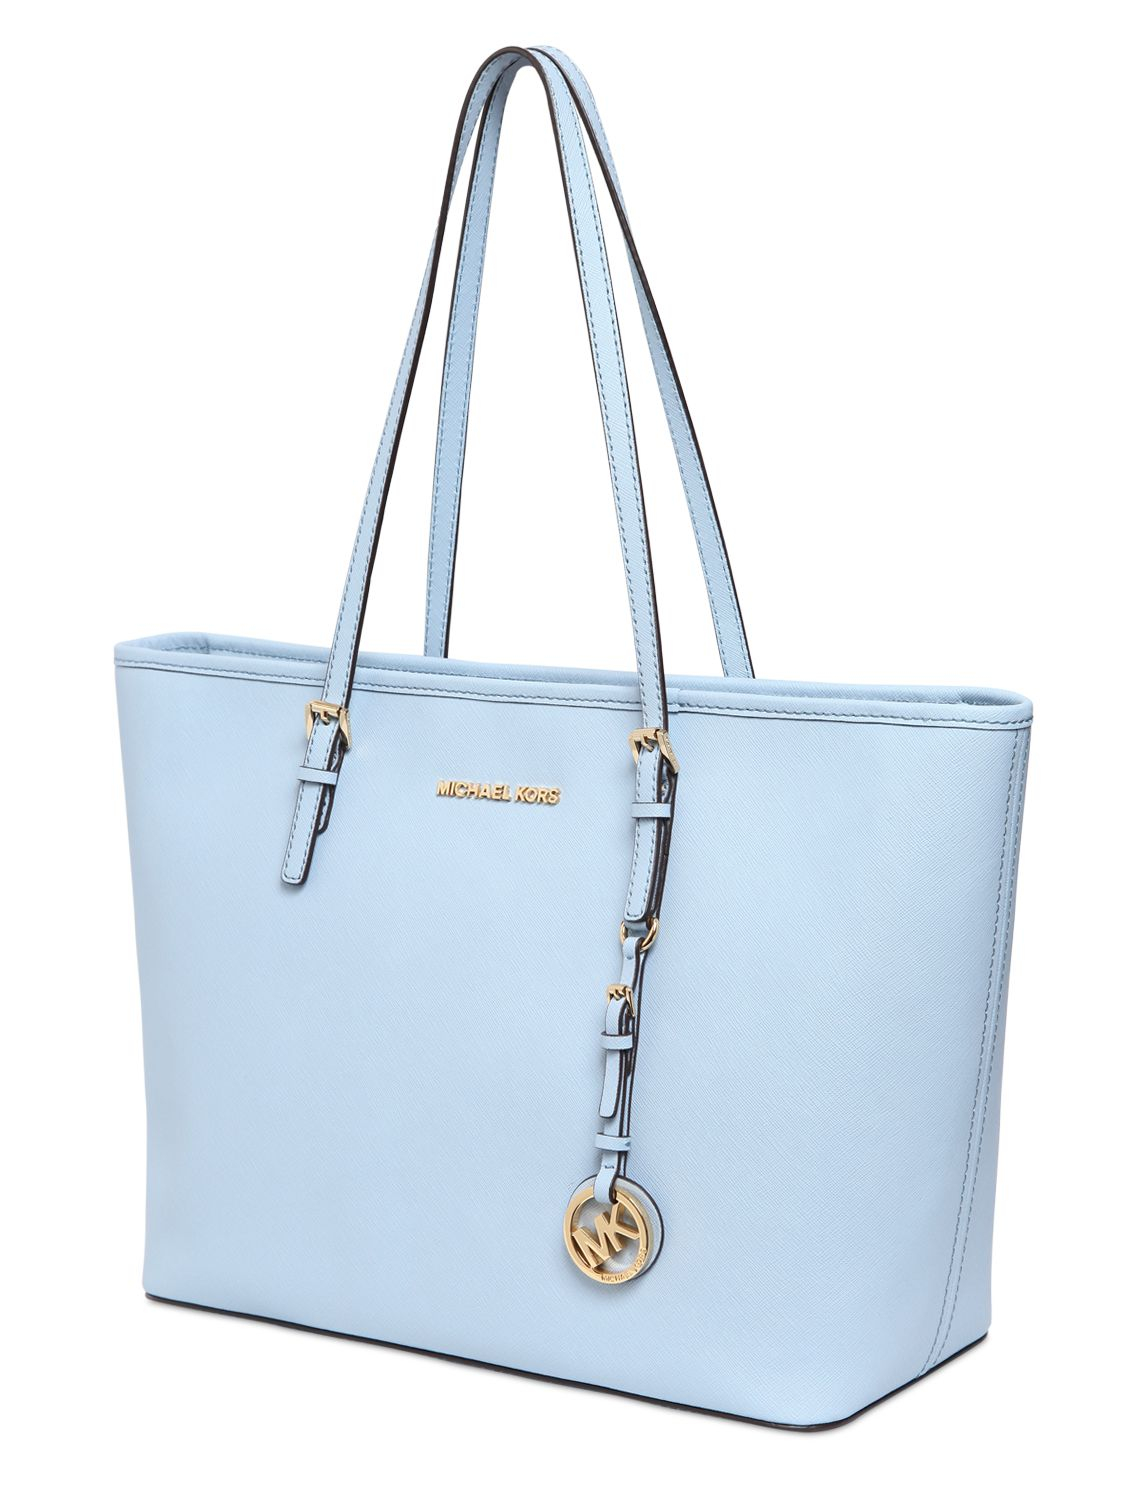 MICHAEL Michael Kors Jet Set Saffiano Leather Travel Tote Bag in ... 718bf1f307